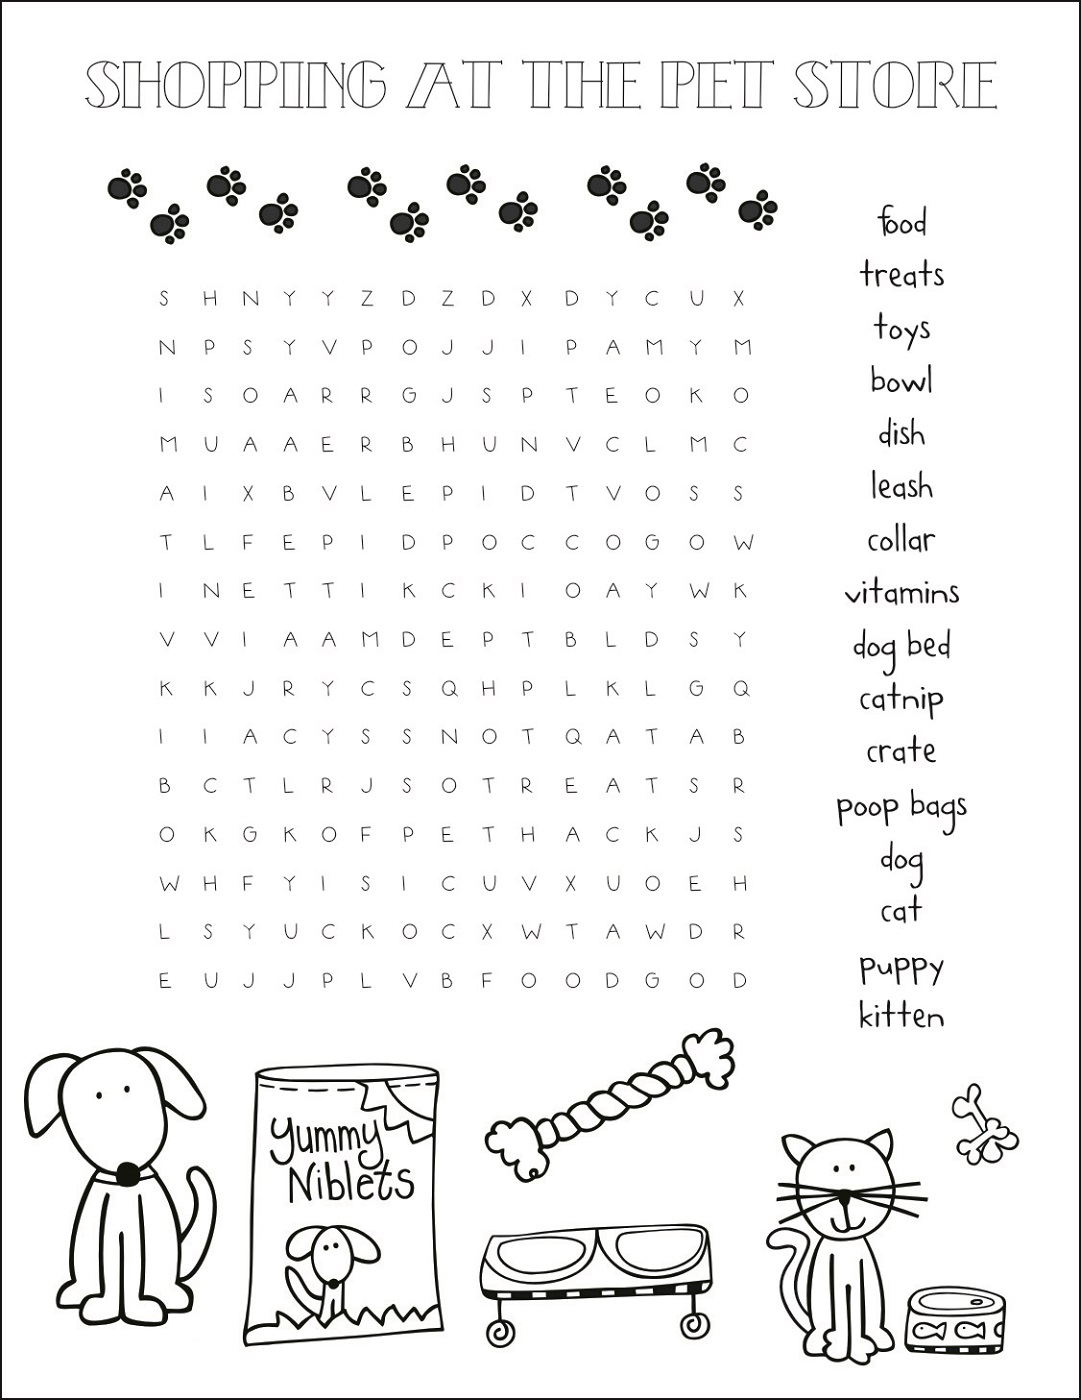 pet-word-search-store